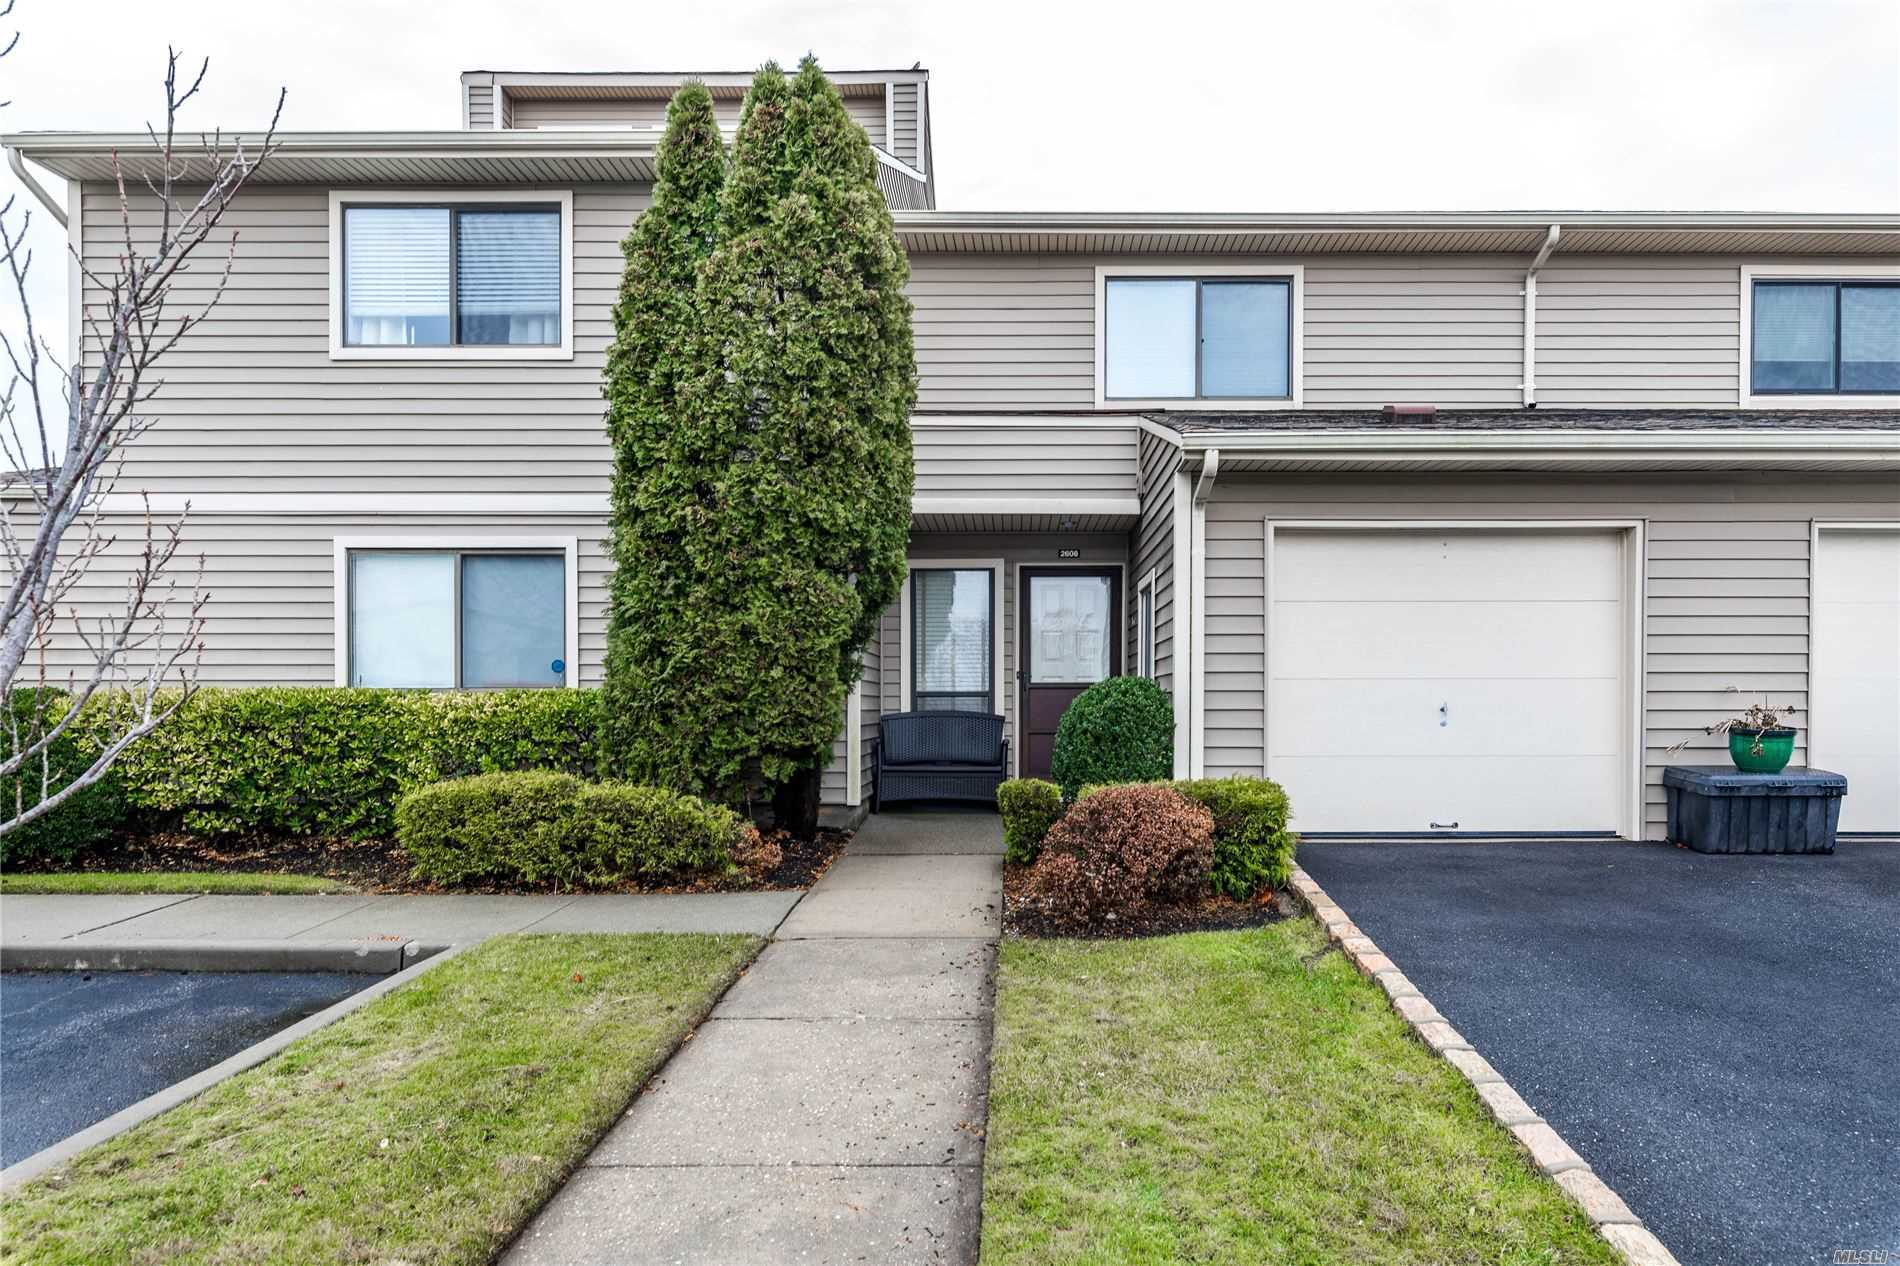 Property for sale at 100 Daly Blvd Unit 2608, Oceanside,  New York 11572